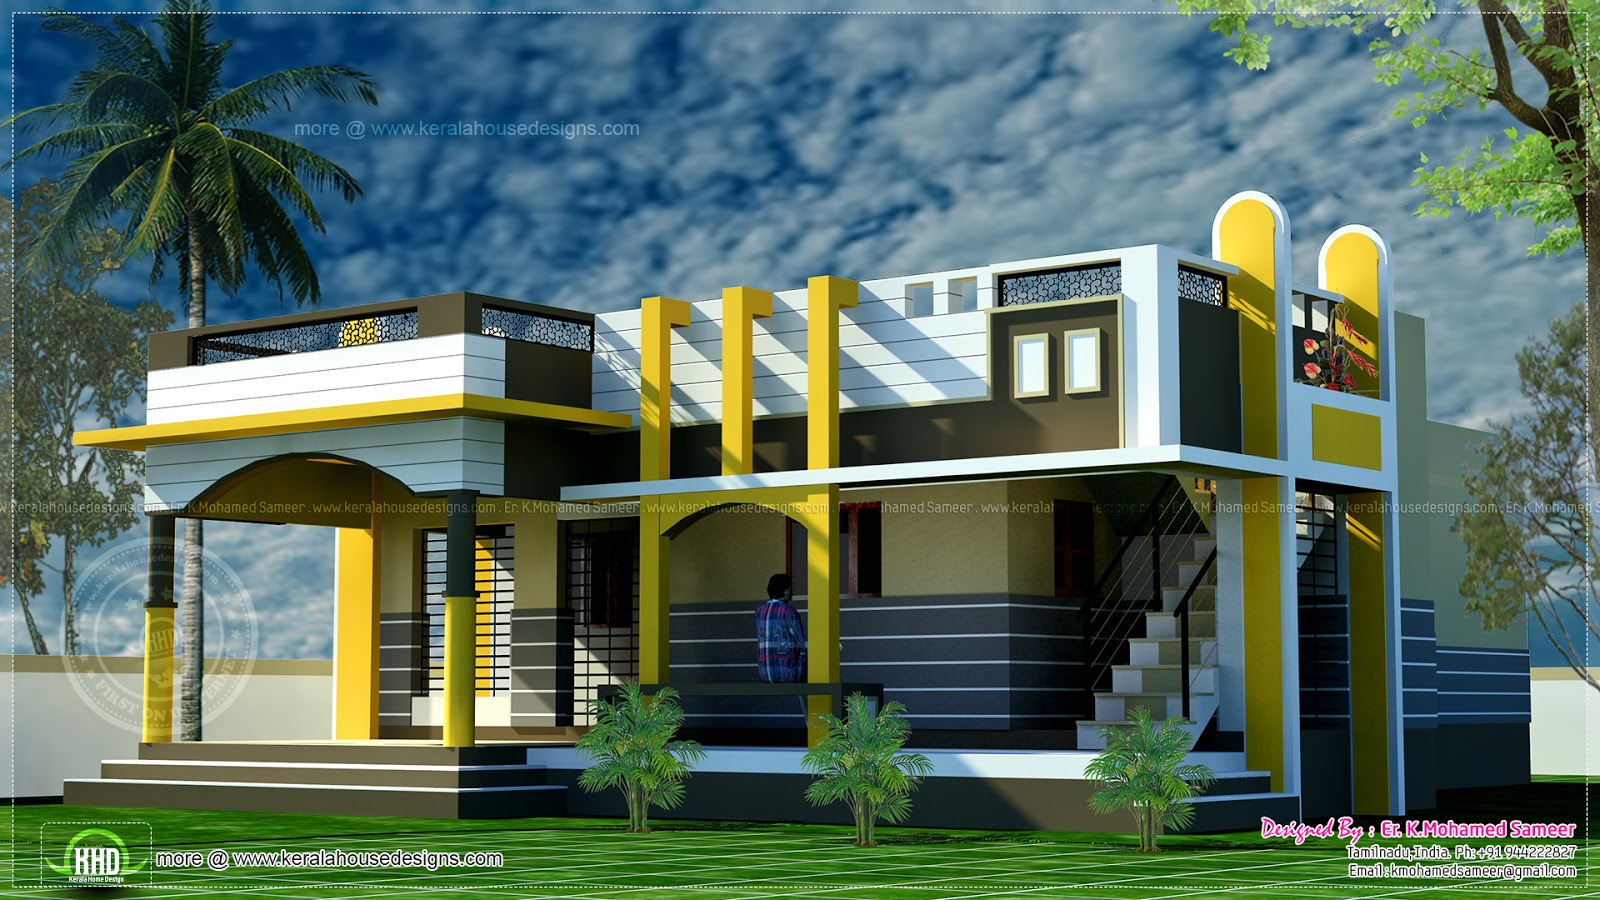 Small house design contemporary style kerala home design for Small house design kerala style